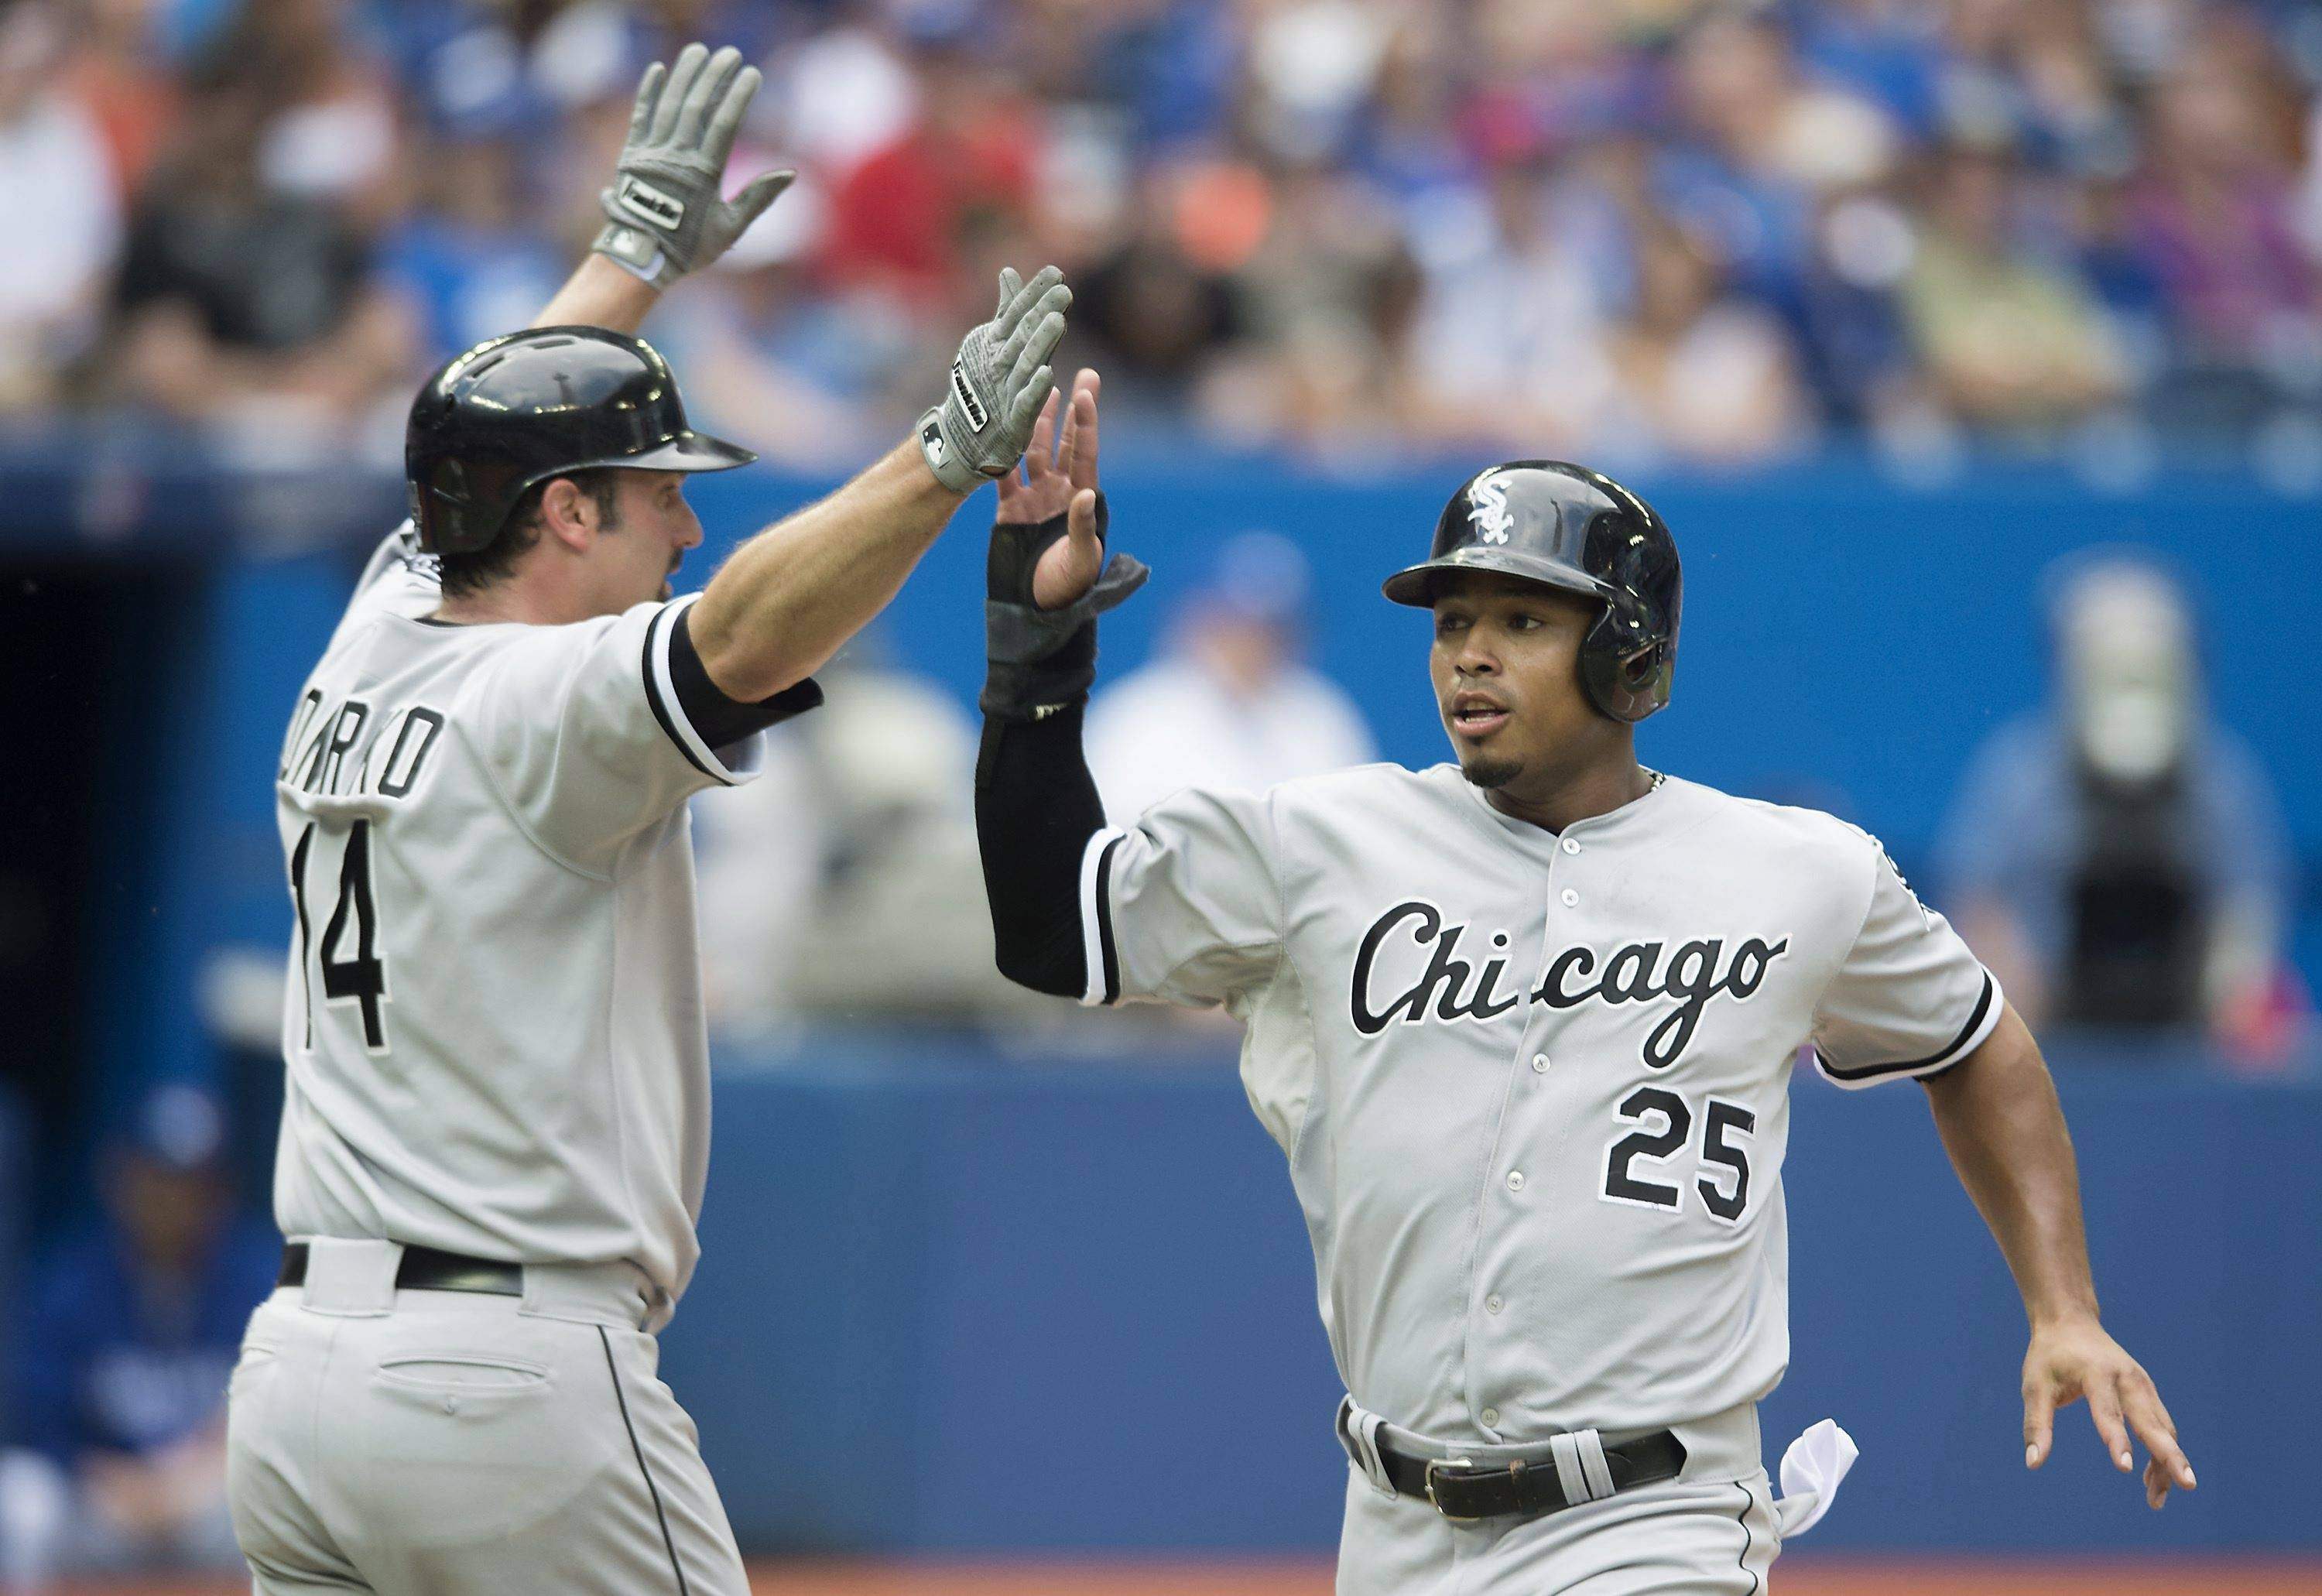 Chicago White Sox's Moises Sierra, right, celebrates with teammate Paul Konerko after scoring on a two-run single by Tyler Flowers in the ninth inning of a baseball game against the Toronto Blue Jays in Toronto, on Sunday, June 29, 2014. Chicago won 4-0.